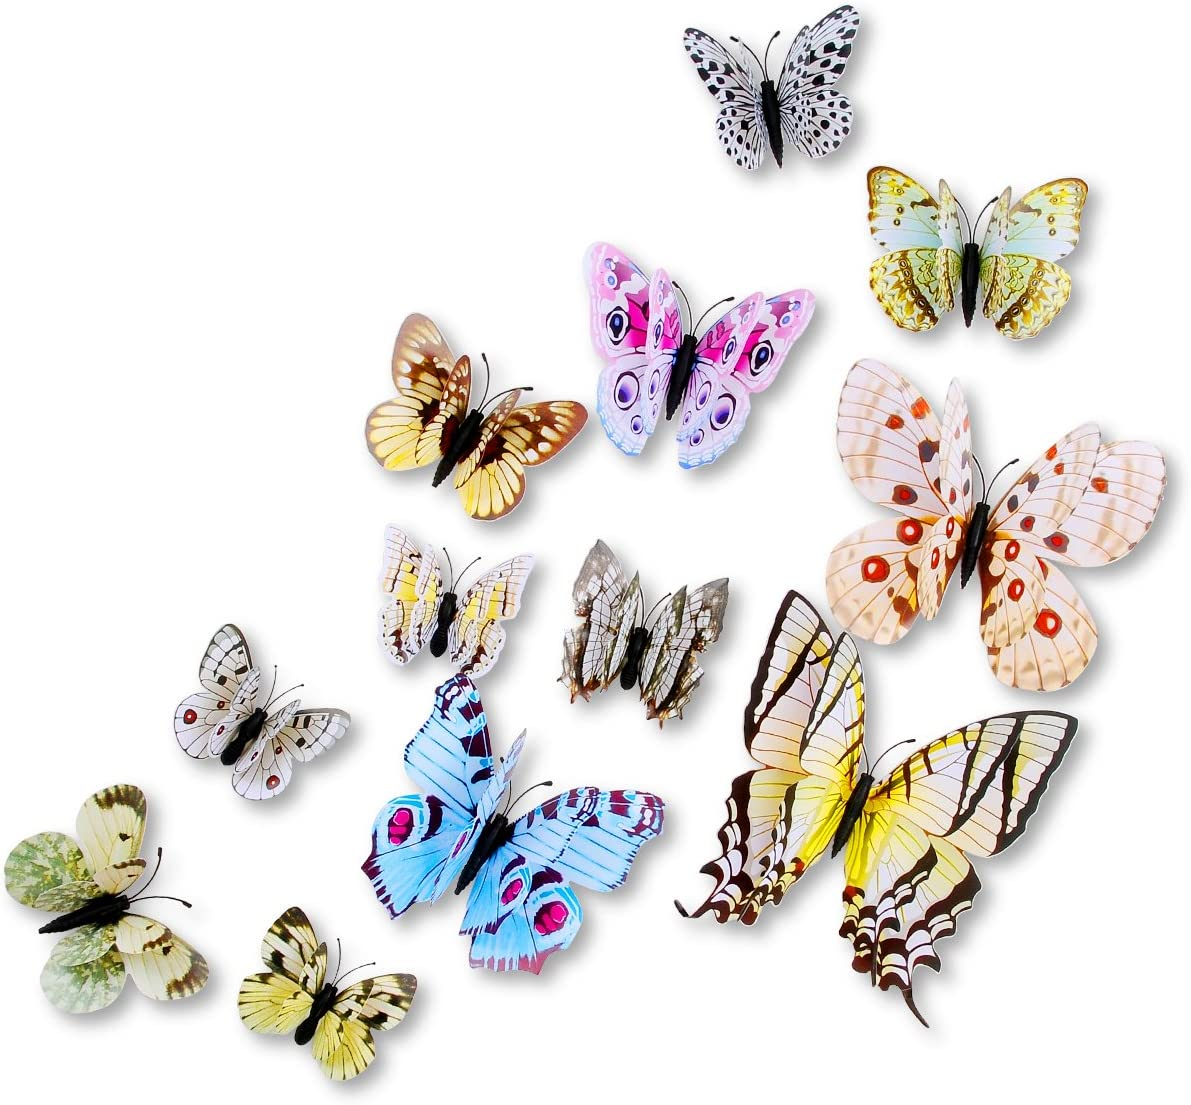 DAGOU Mixed of 12PCS 3D Pink Butterfly Wall Stickers Decor Art Decorations¡ (White)